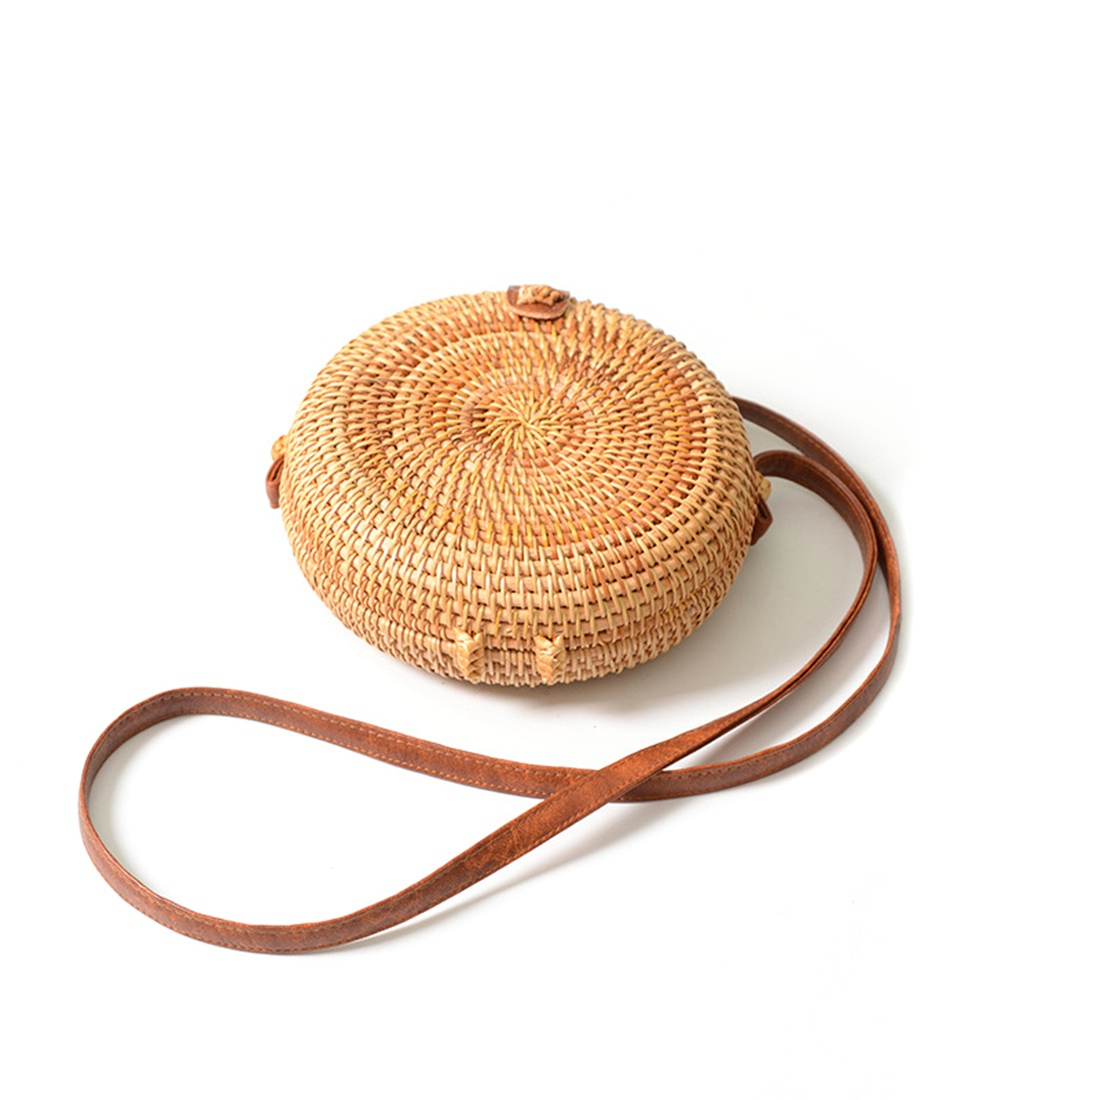 DCOS INS new ladies hand-woven bag round rattan retro literary hand-woven leather buckle package Bohemia Beach Messenger bag